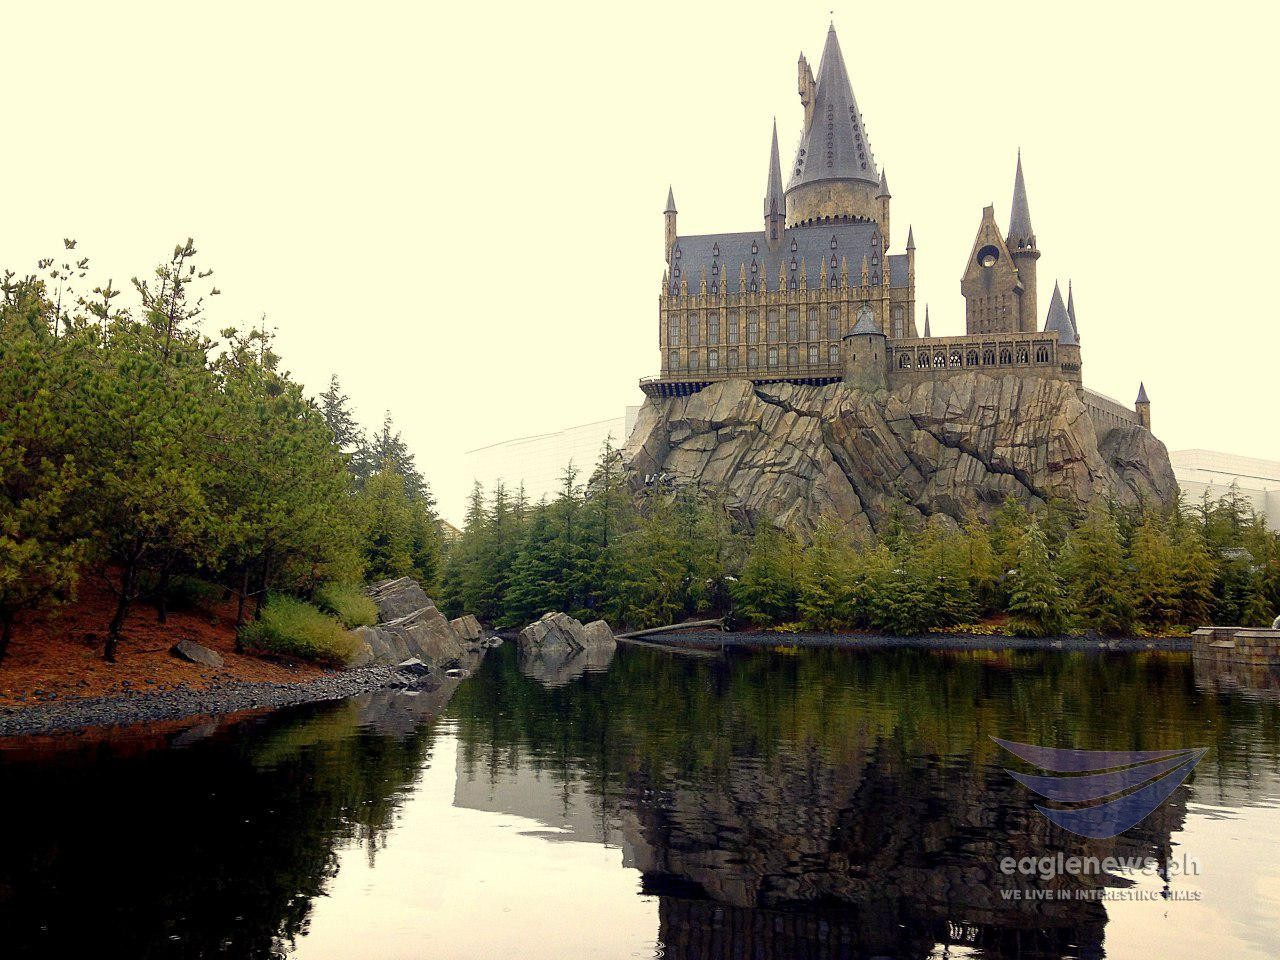 #EBCphotography:  A view of the Wizarding World of Harry Potter at the Universal Studios in Japan